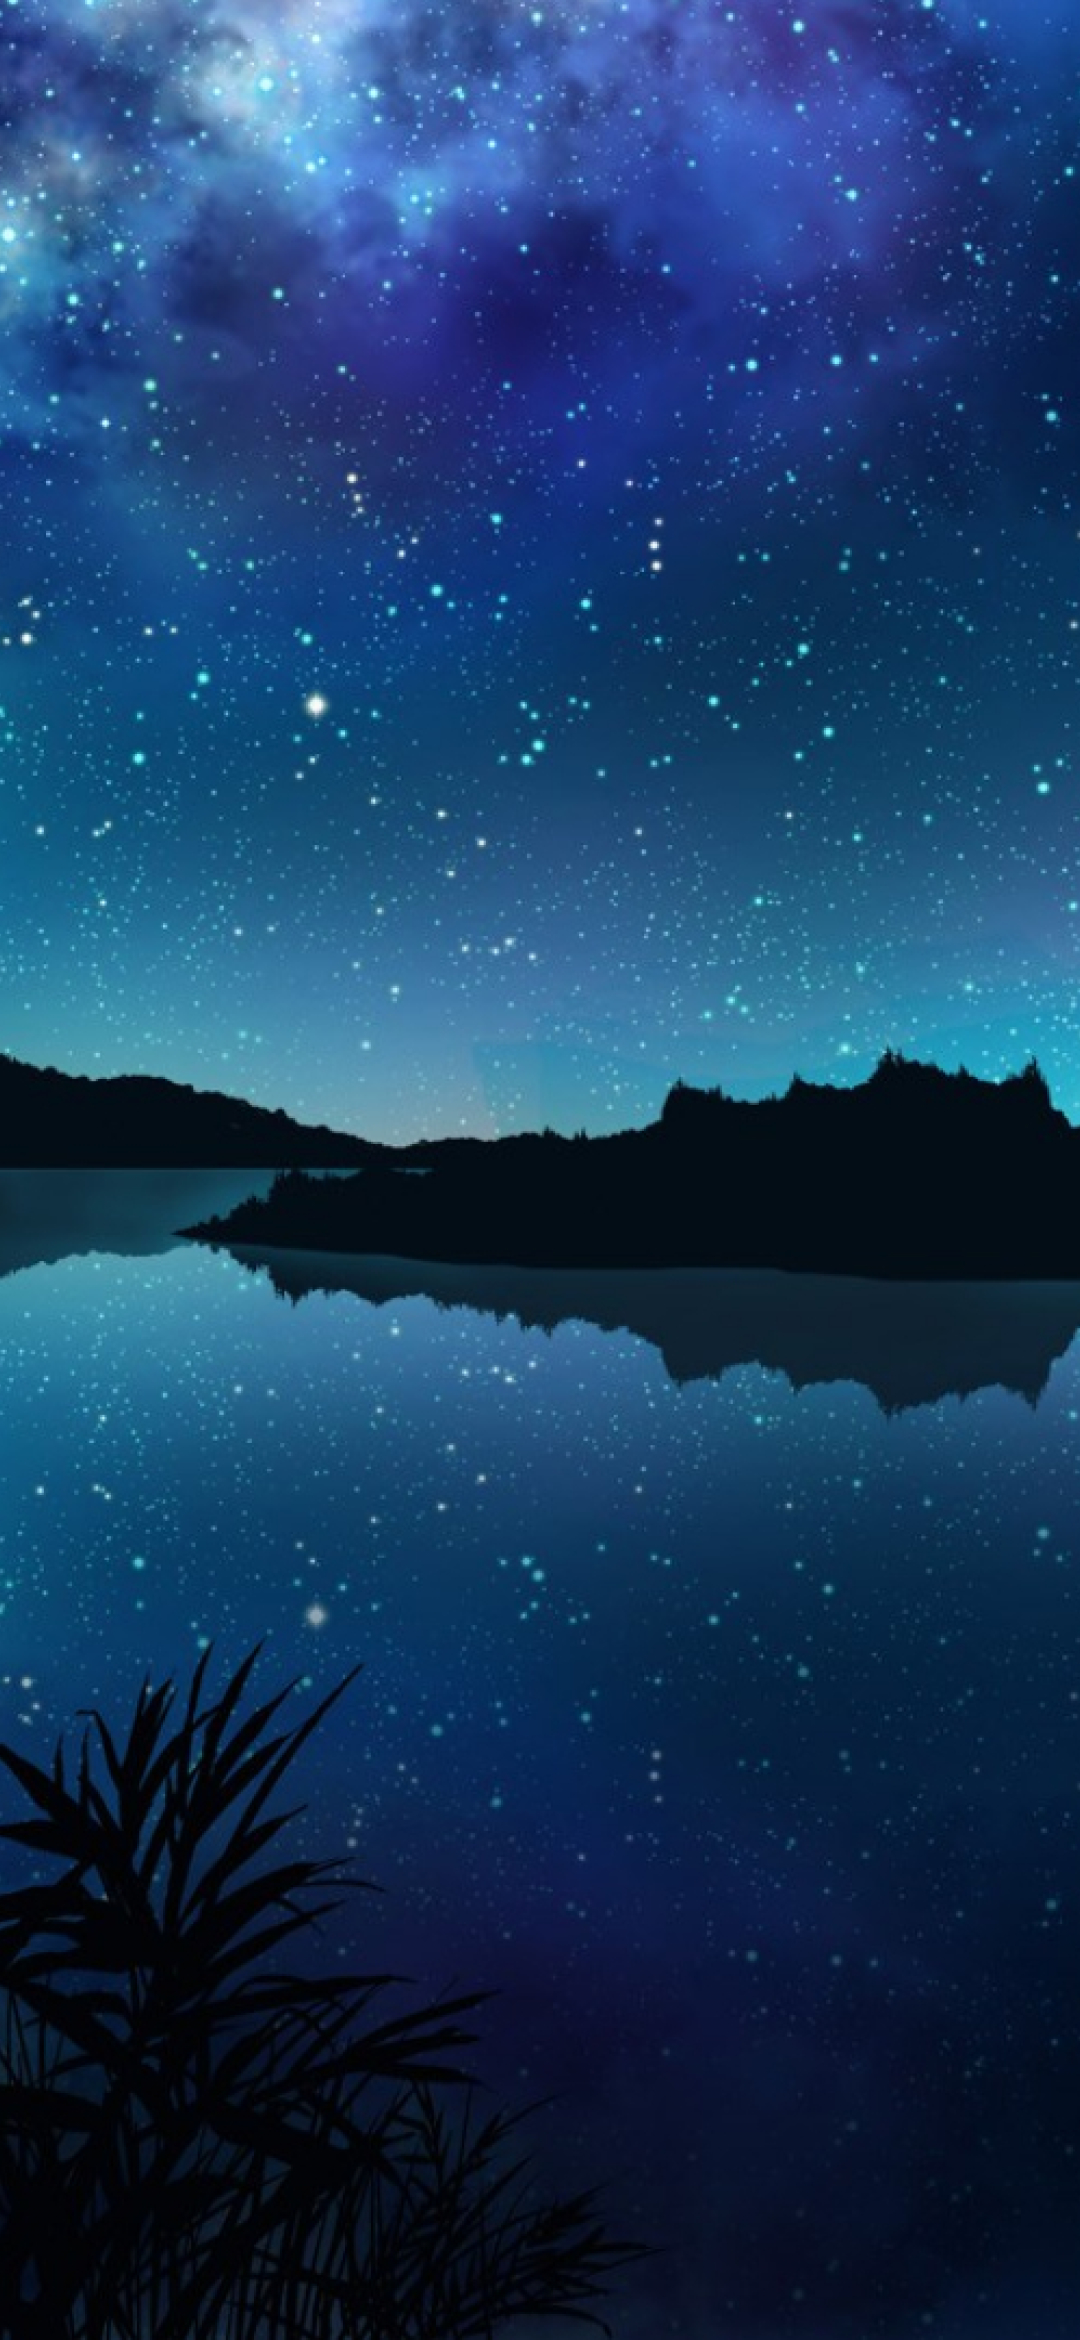 1080x2340 Amazing Starry Night Over Mountains and River ...